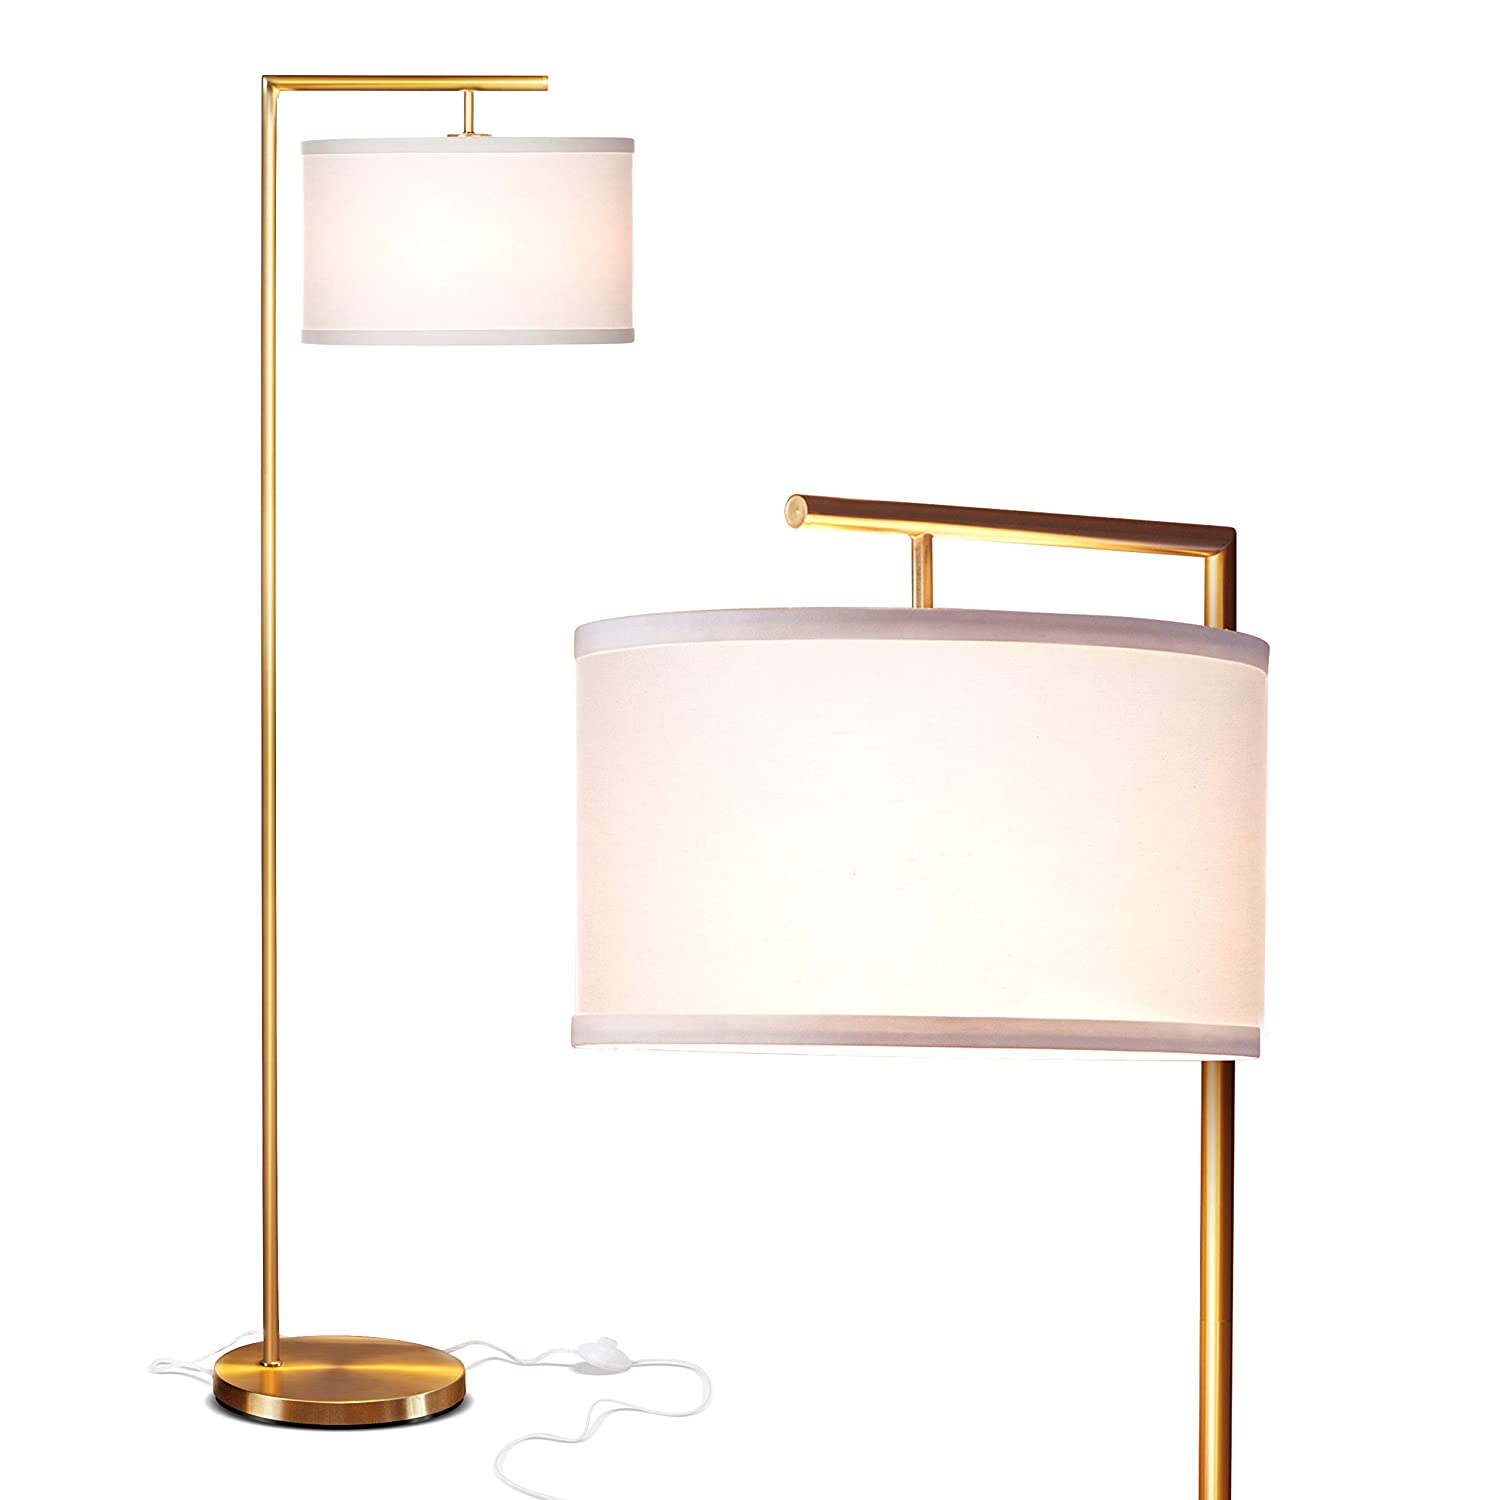 Brightech Montage Modern LED Floor Lamp - Living Room Light - Standing Pole with Hanging Drum Shade - Tall Downlight for Bedrooms, Family Rooms, Offices – Antique Brass